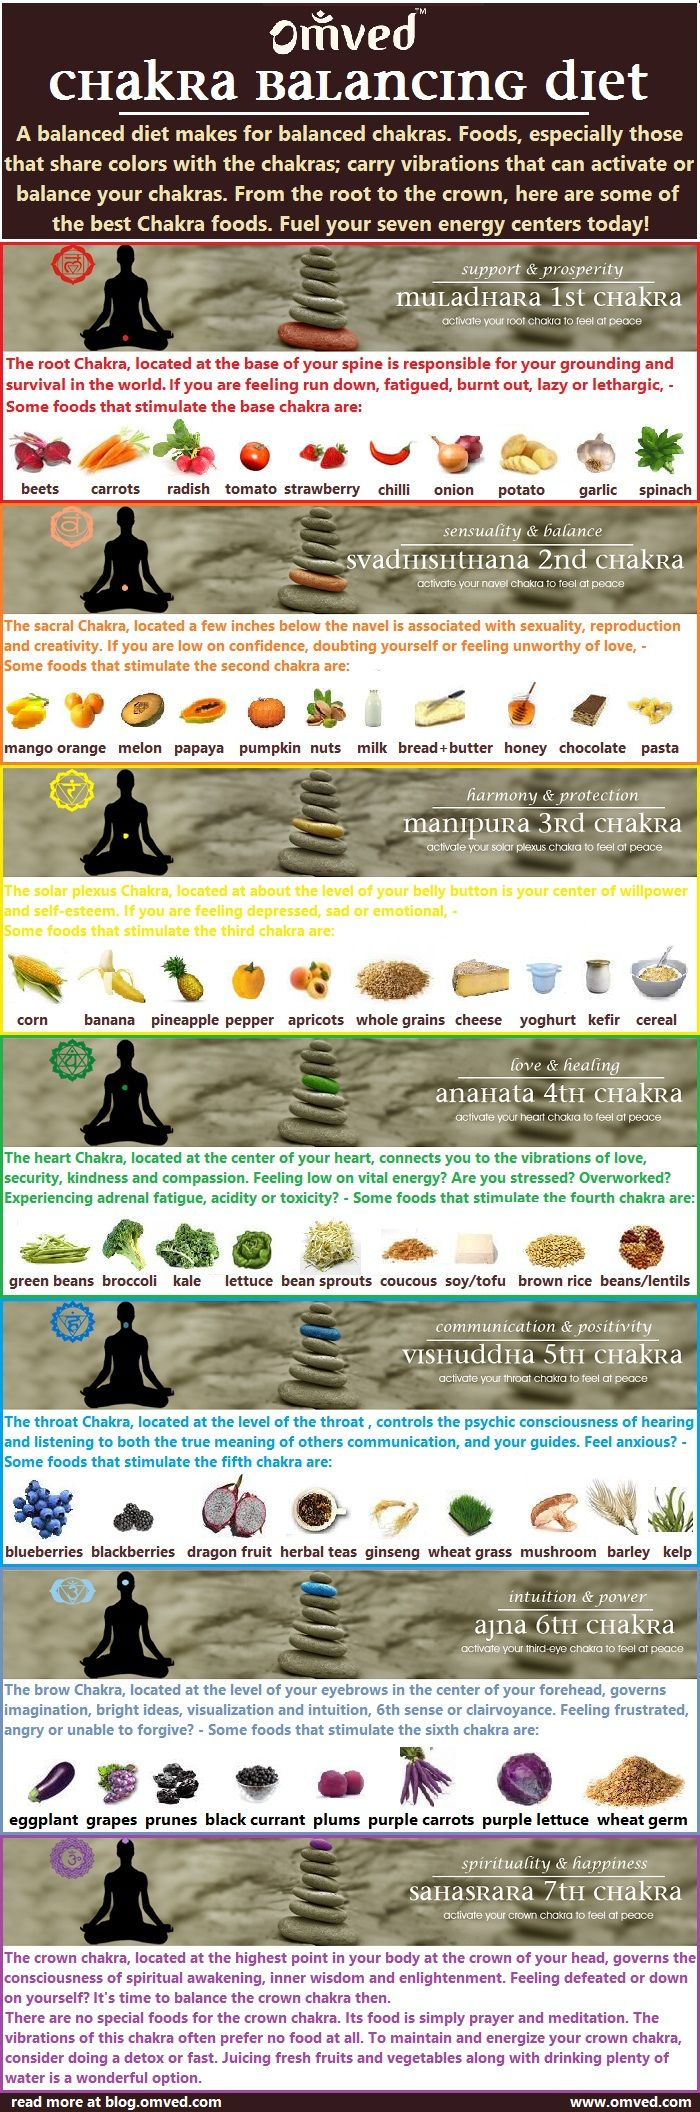 #CHAKRA #DIET - Chakras are spinning energy centers located throughout your body that influence and reflect your physical health as well as your mental, emotional and spiritual wellbeing. Balanced diet can result in balanced chakras. Here is a chart of the best #chakra #foods. Read more at blog. omved.com ~☆~